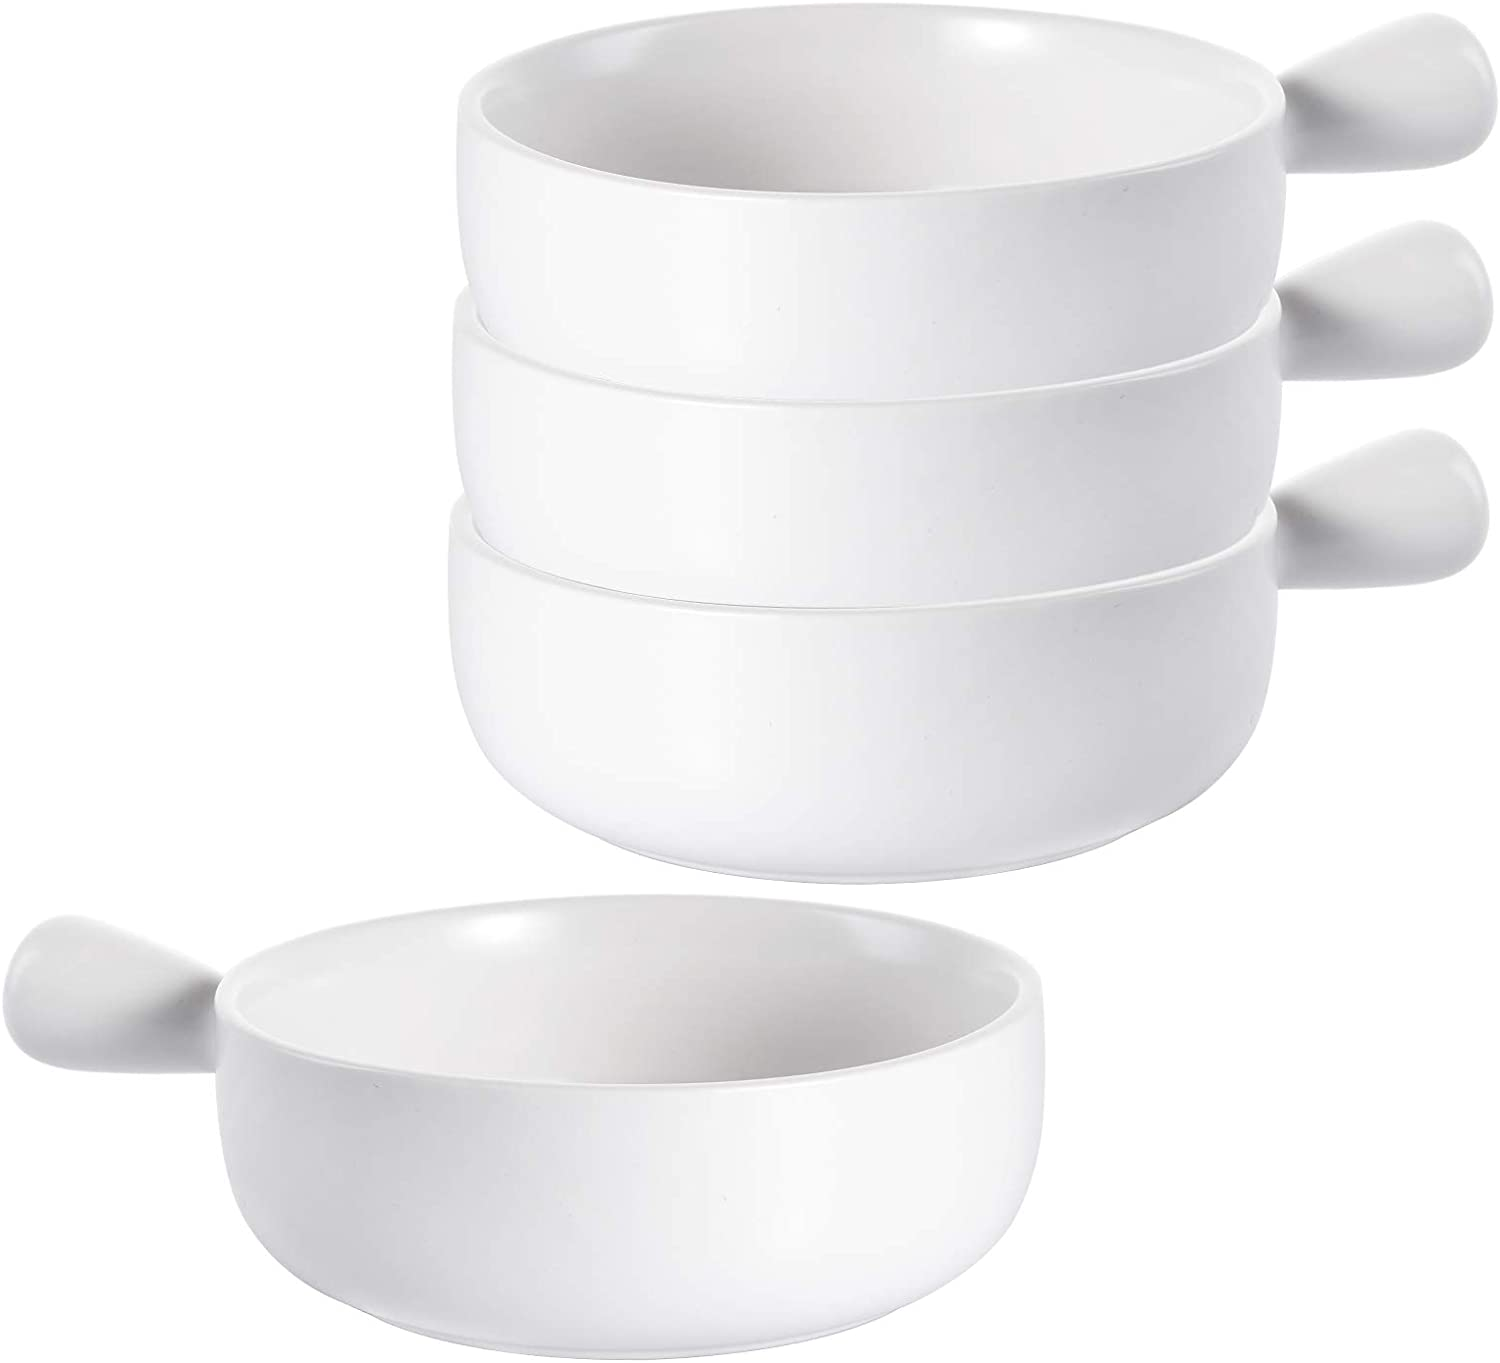 TOPZEA Set of 4 French Onion Soup Bowls with Handles, 15 Ounce Ceramic Serving Bowl Set Soup Crocks for Soup, Stew, Chilli, Cereal, Microwave and Oven safe, White